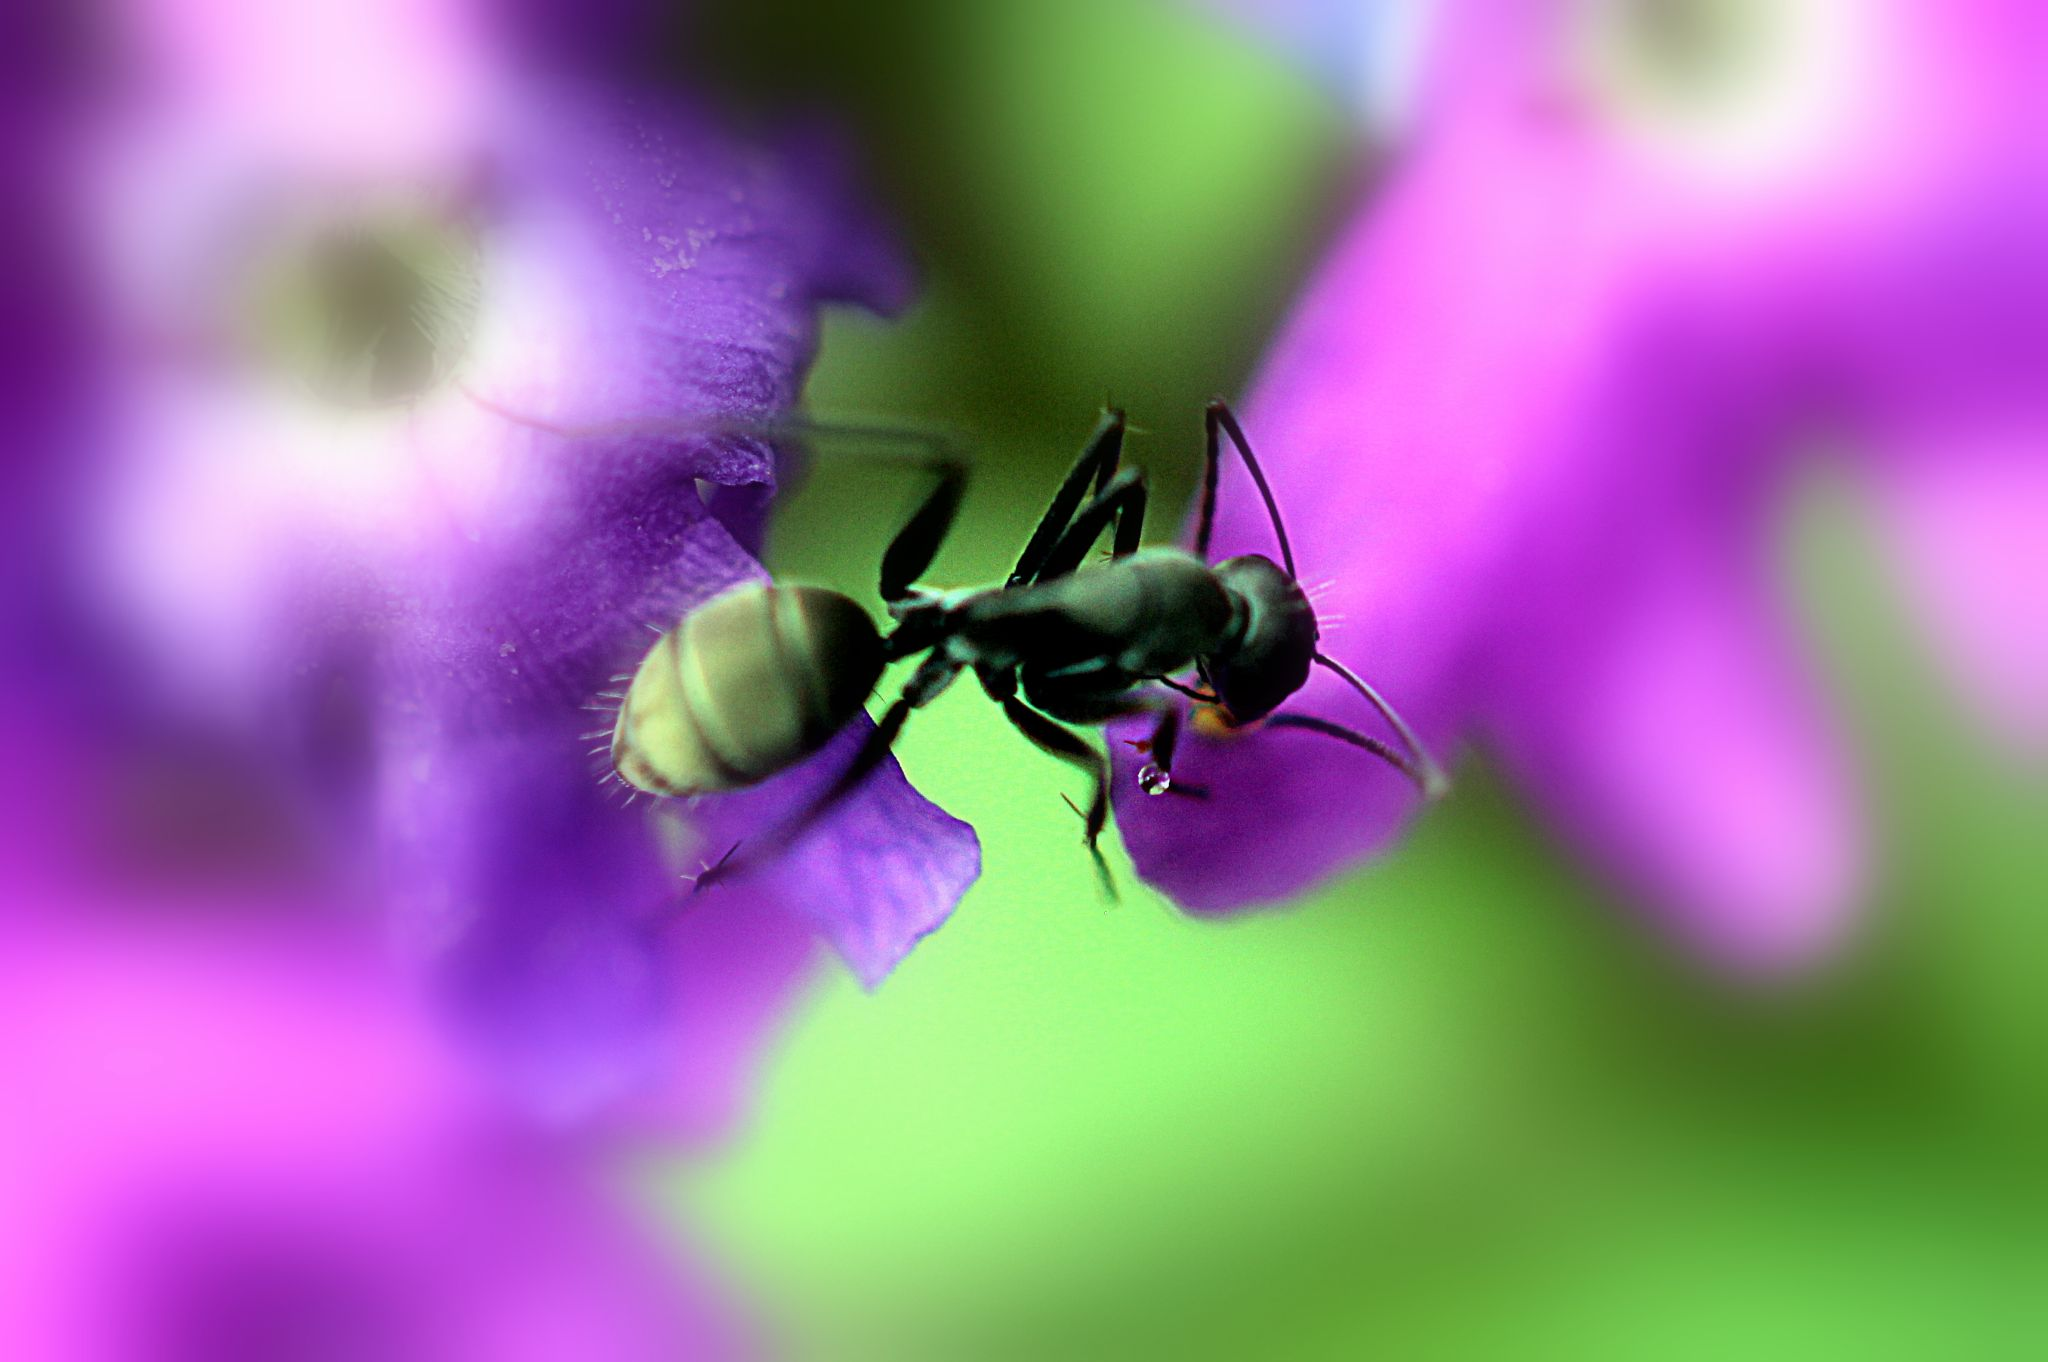 Ant in Colour by Christo Smith